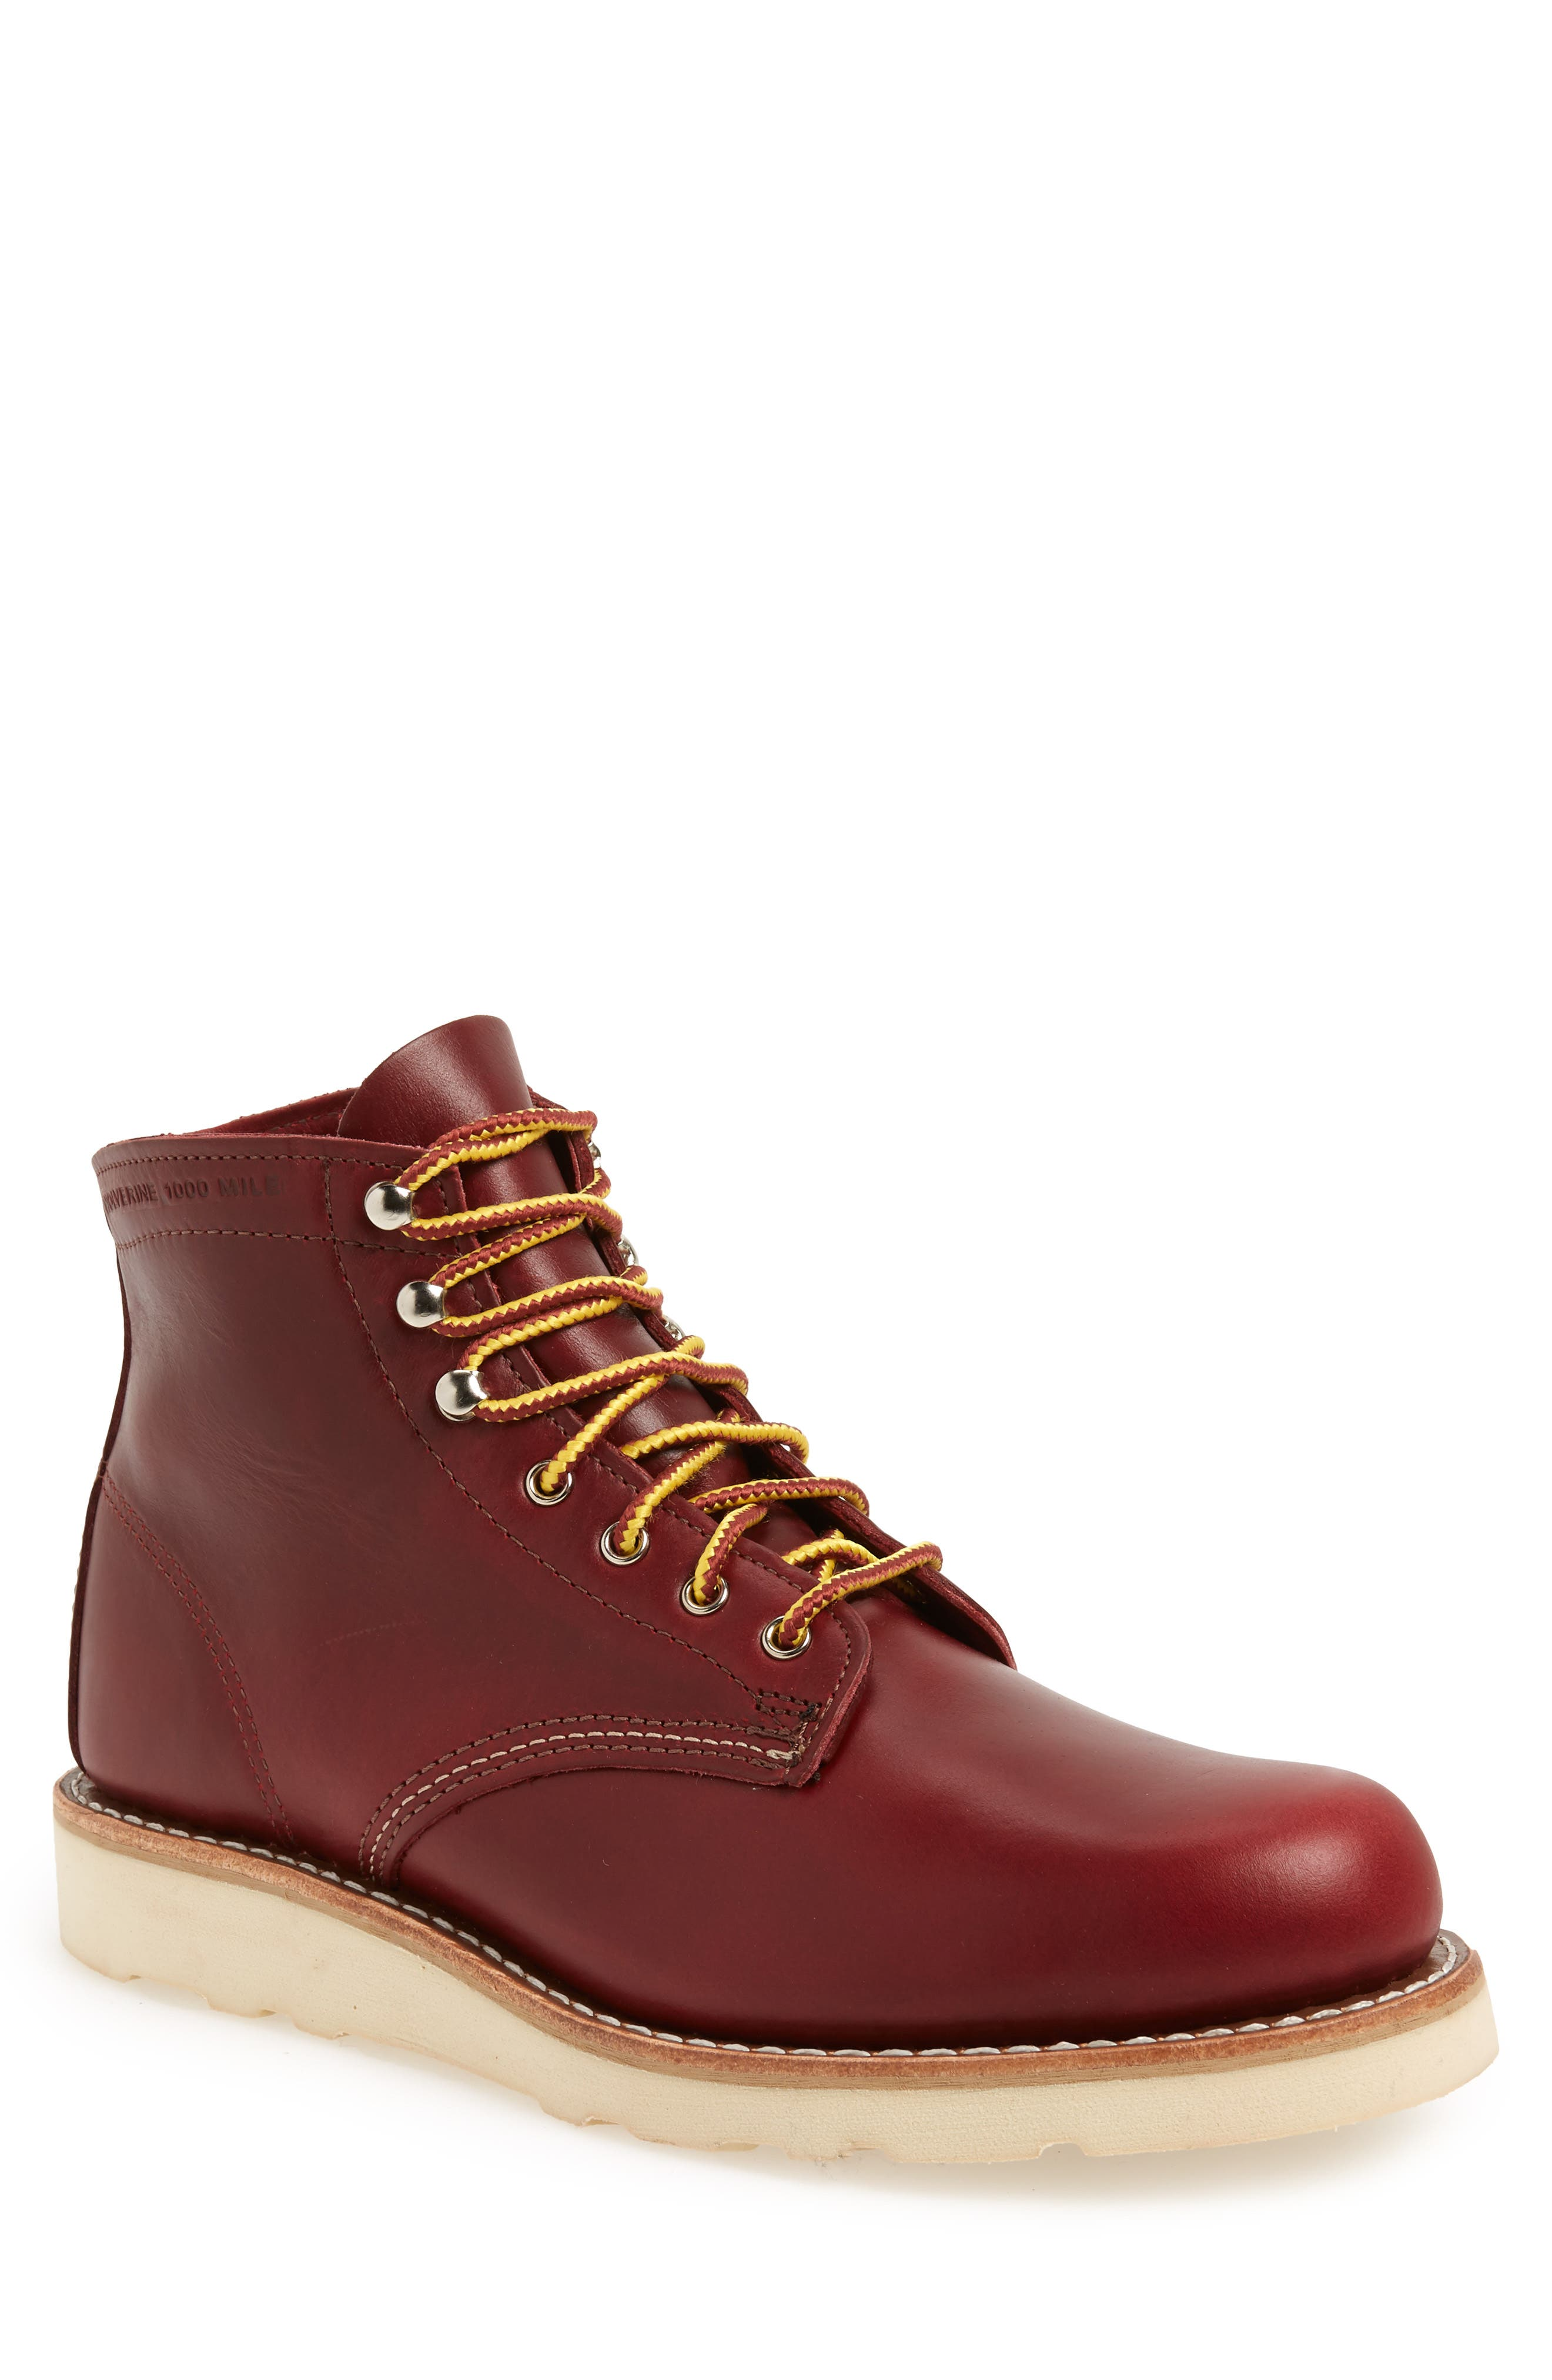 1000 Mile Wedge Boot,                         Main,                         color, RED